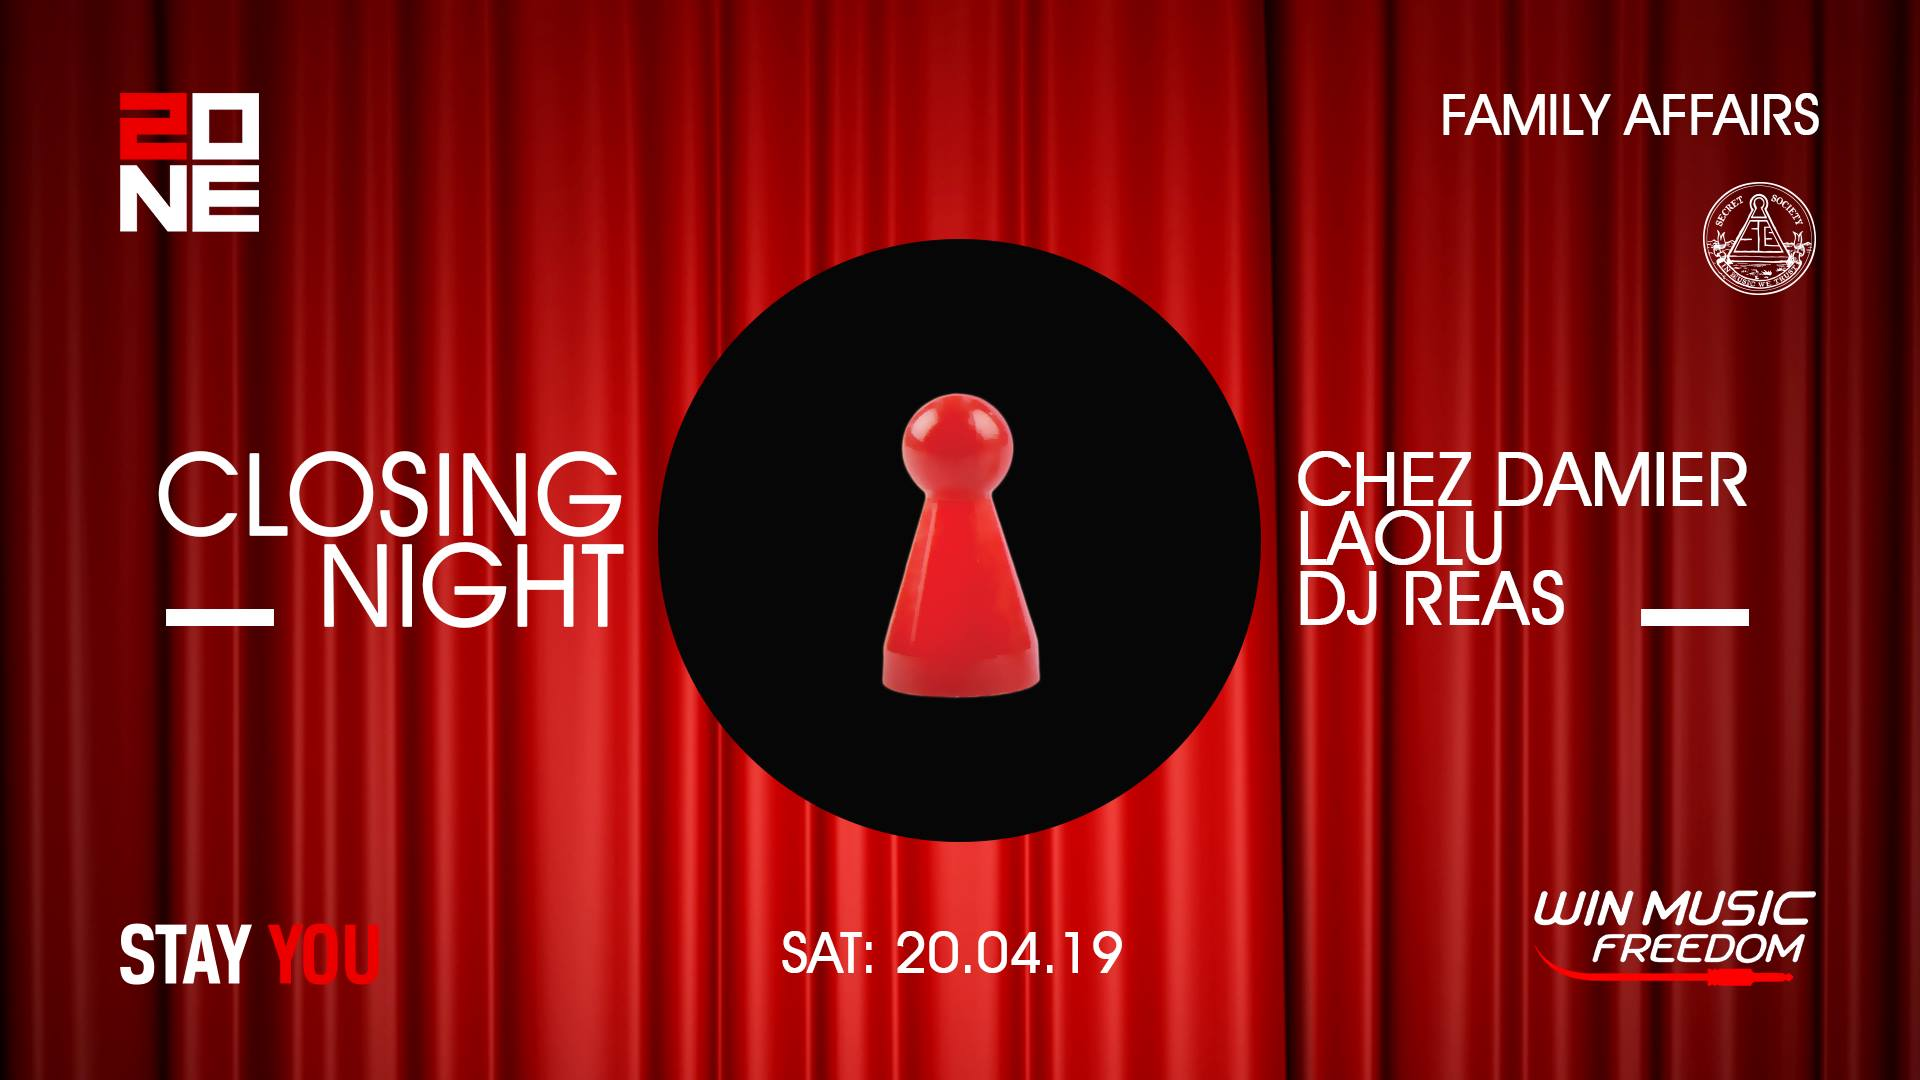 Family Affairs pt. 7 : Chez Damier, Laolu, Dj Reas - @Zone Club